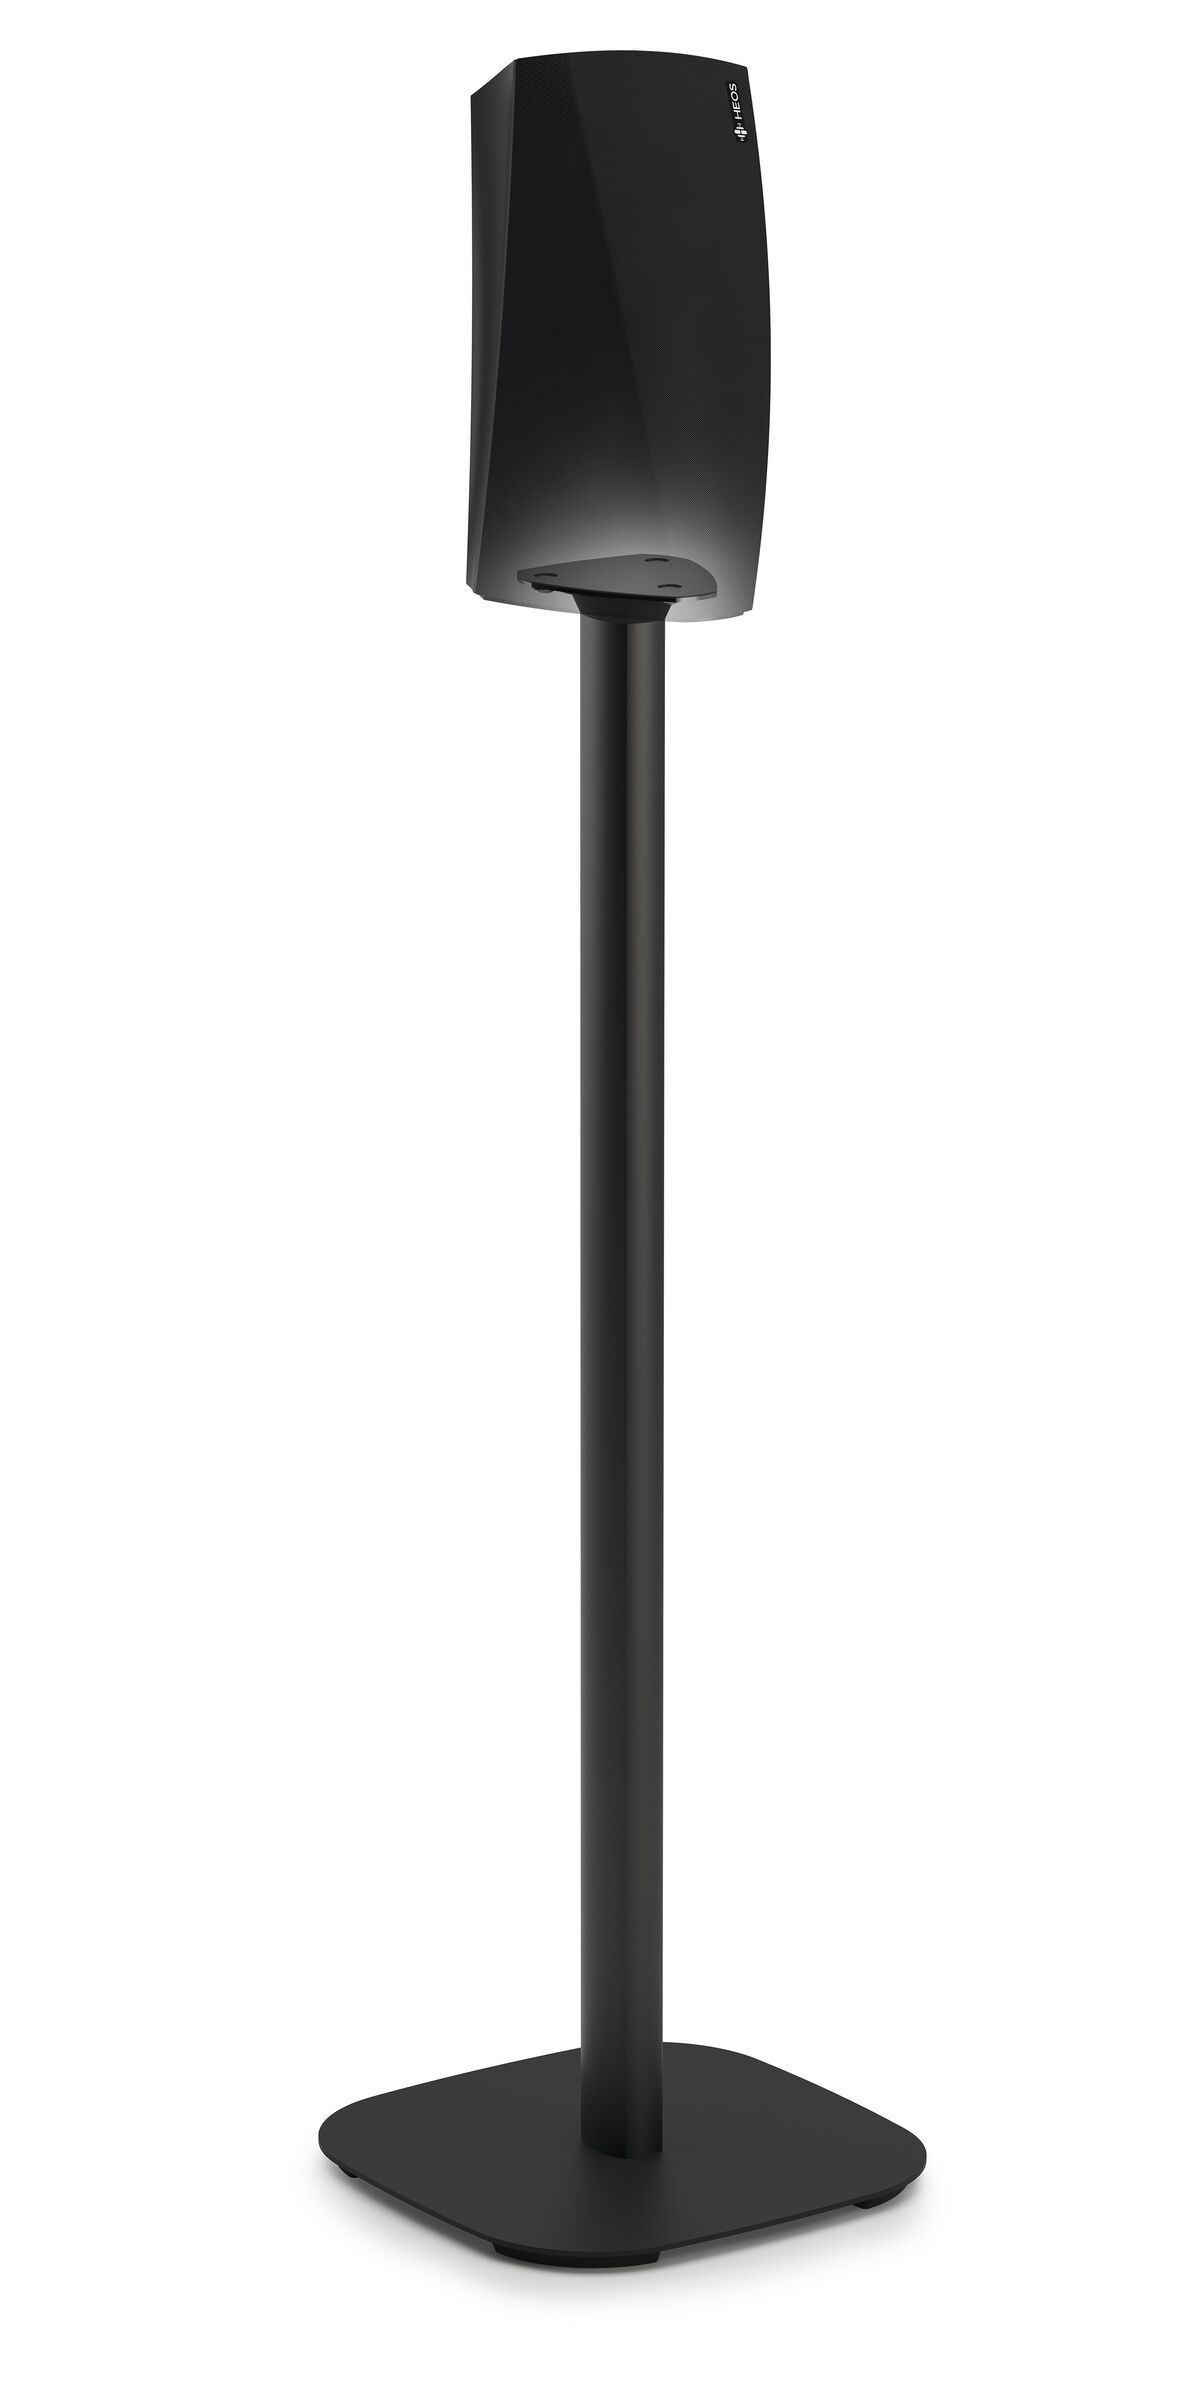 Vogel's SOUND 5313 Speaker Stand for Denon HEOS 1 / HEOS 3 (black) - Application